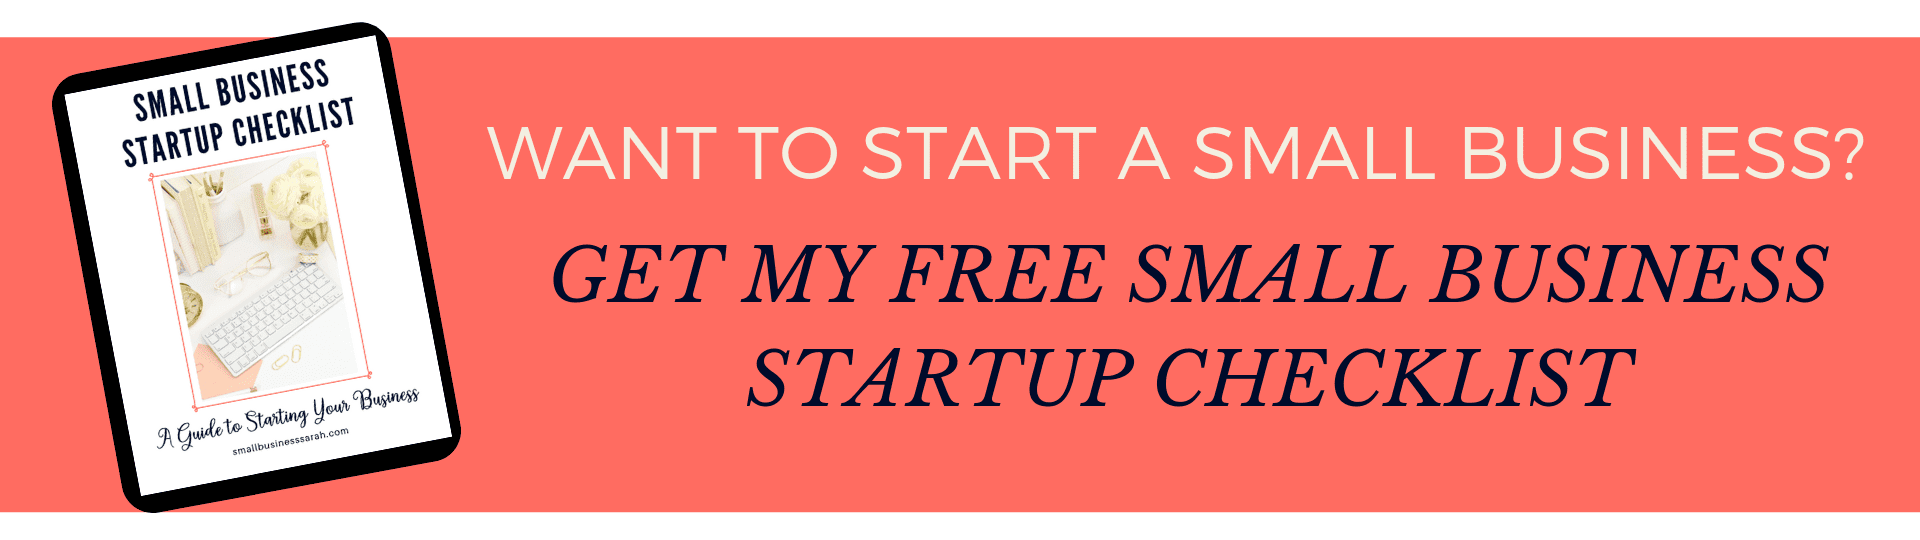 Get your FREE Small Business Startup Checklist